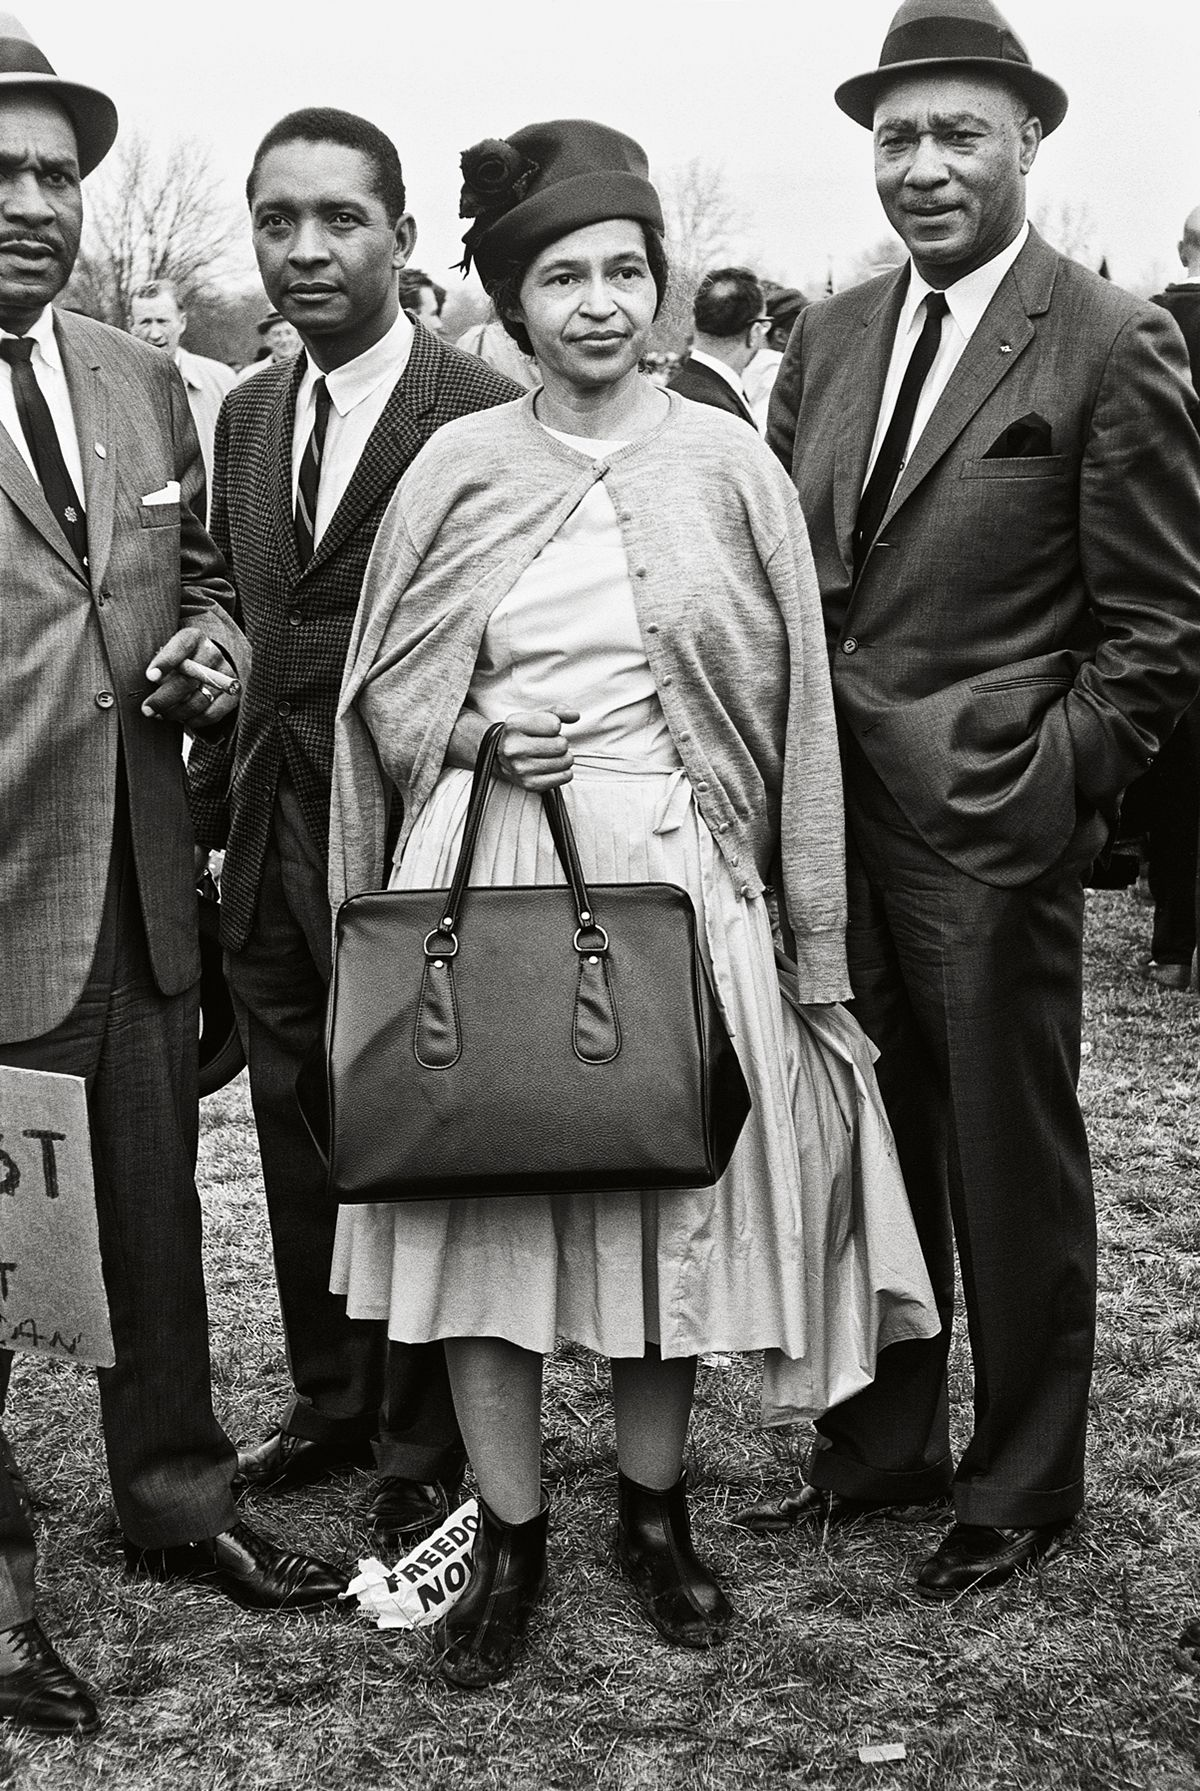 Rosa Parks, Selma March, 1965, 20x 16Inches, Silver Gelatin Photograph, Edition of 25